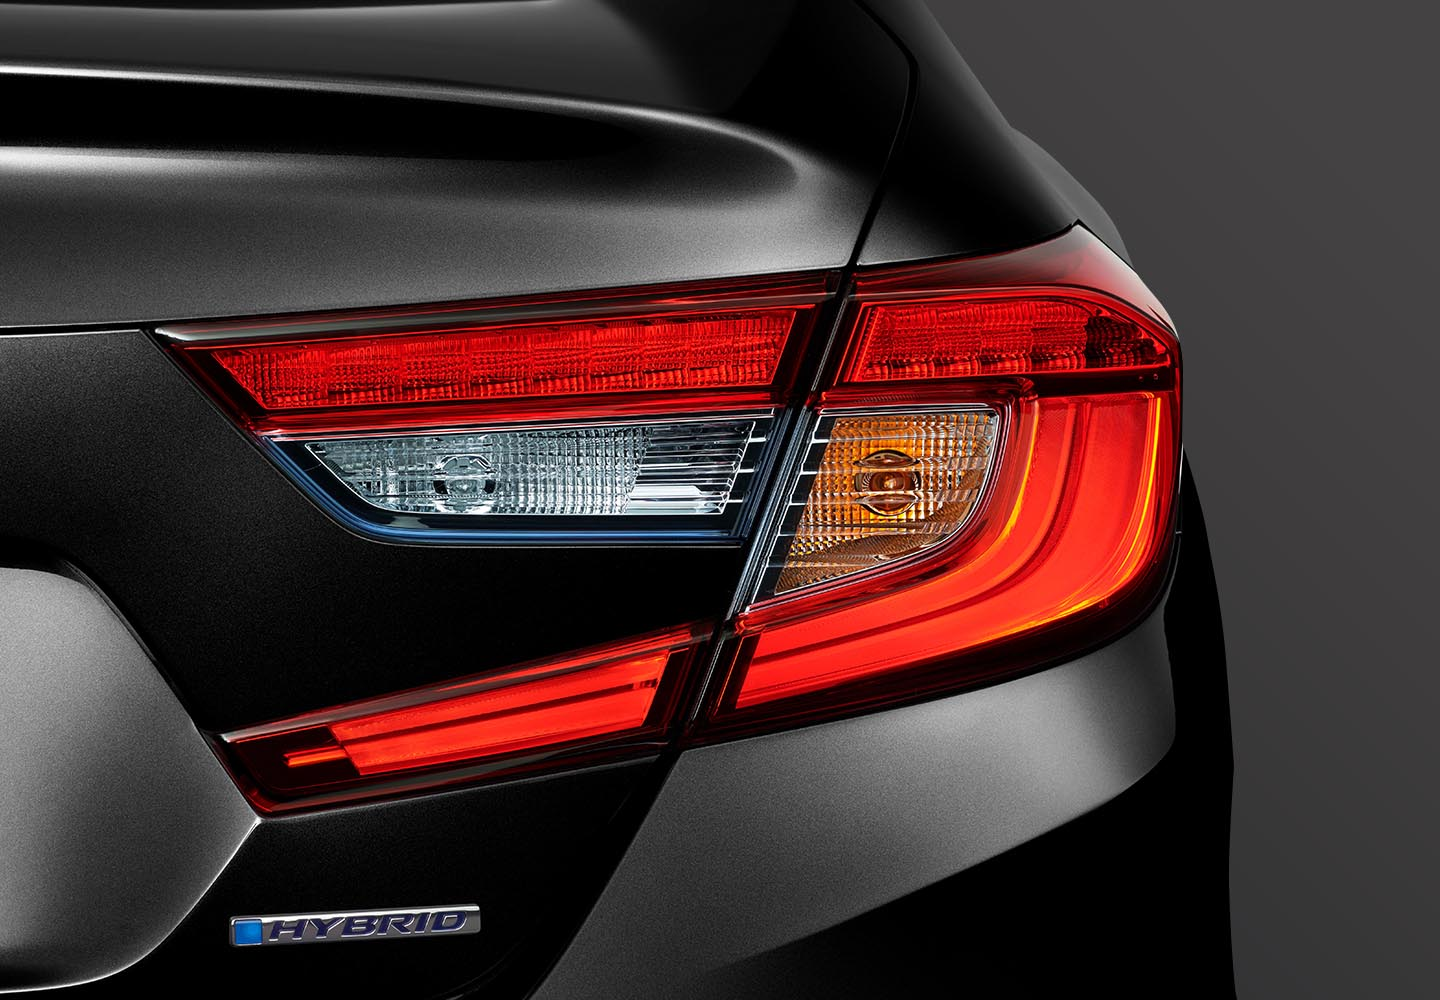 Accord Tail Lights